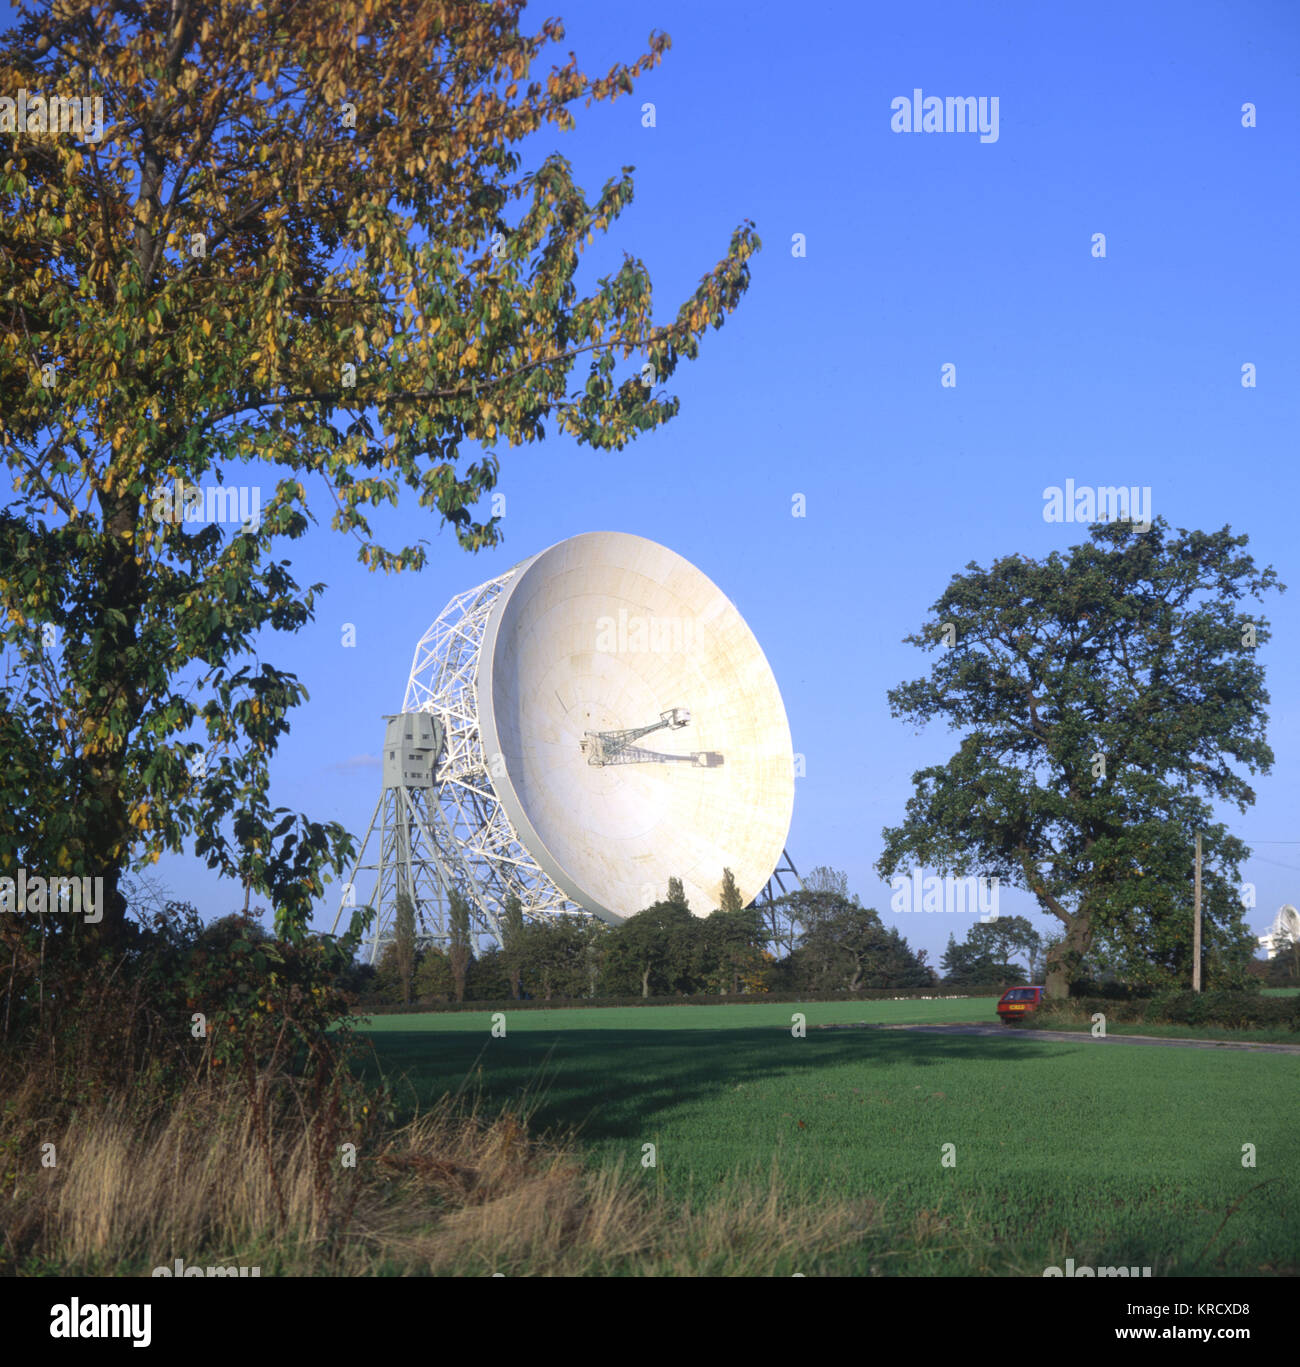 The brainchild of Sir Bernard  Lovell, the Lovell Radio  Telescope was for many years  the largest in the world - Stock Image